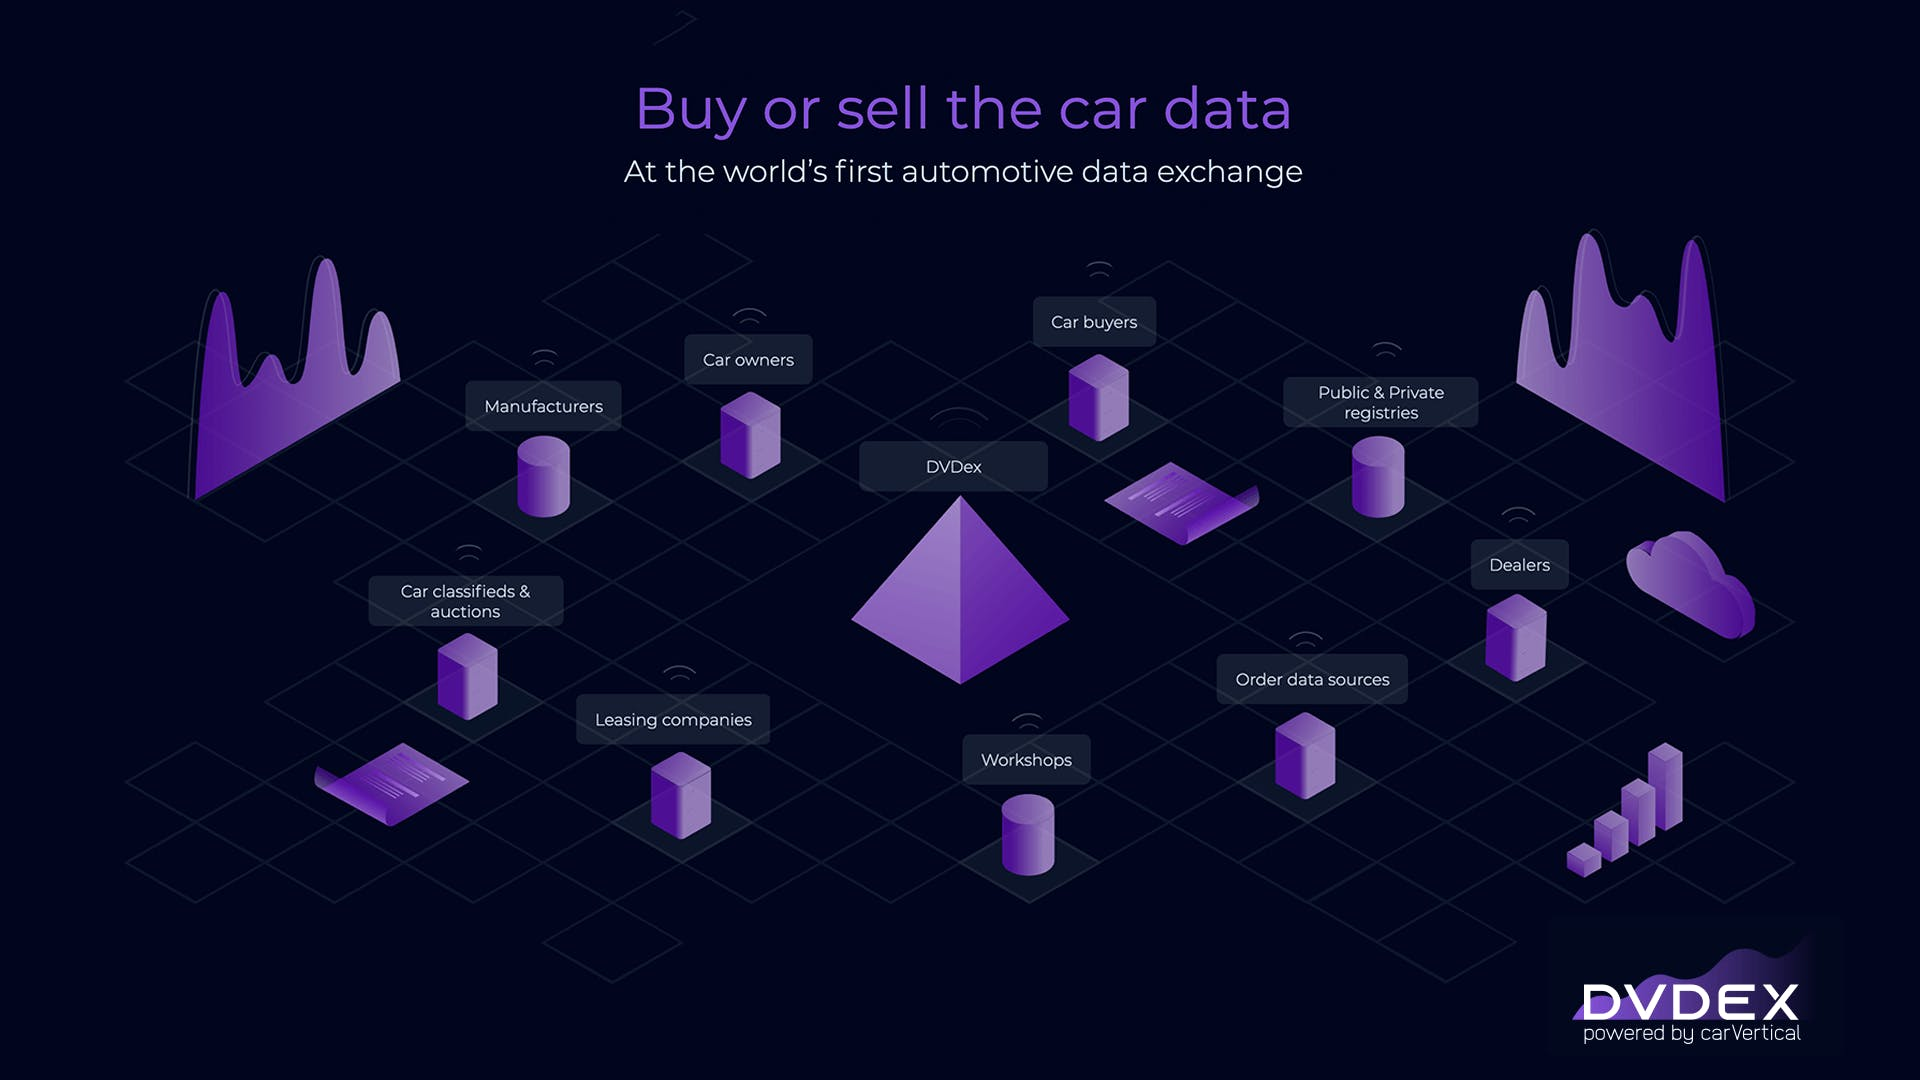 DVDex, the new automotive data exchange, is launched: your car data becomes your wealth now